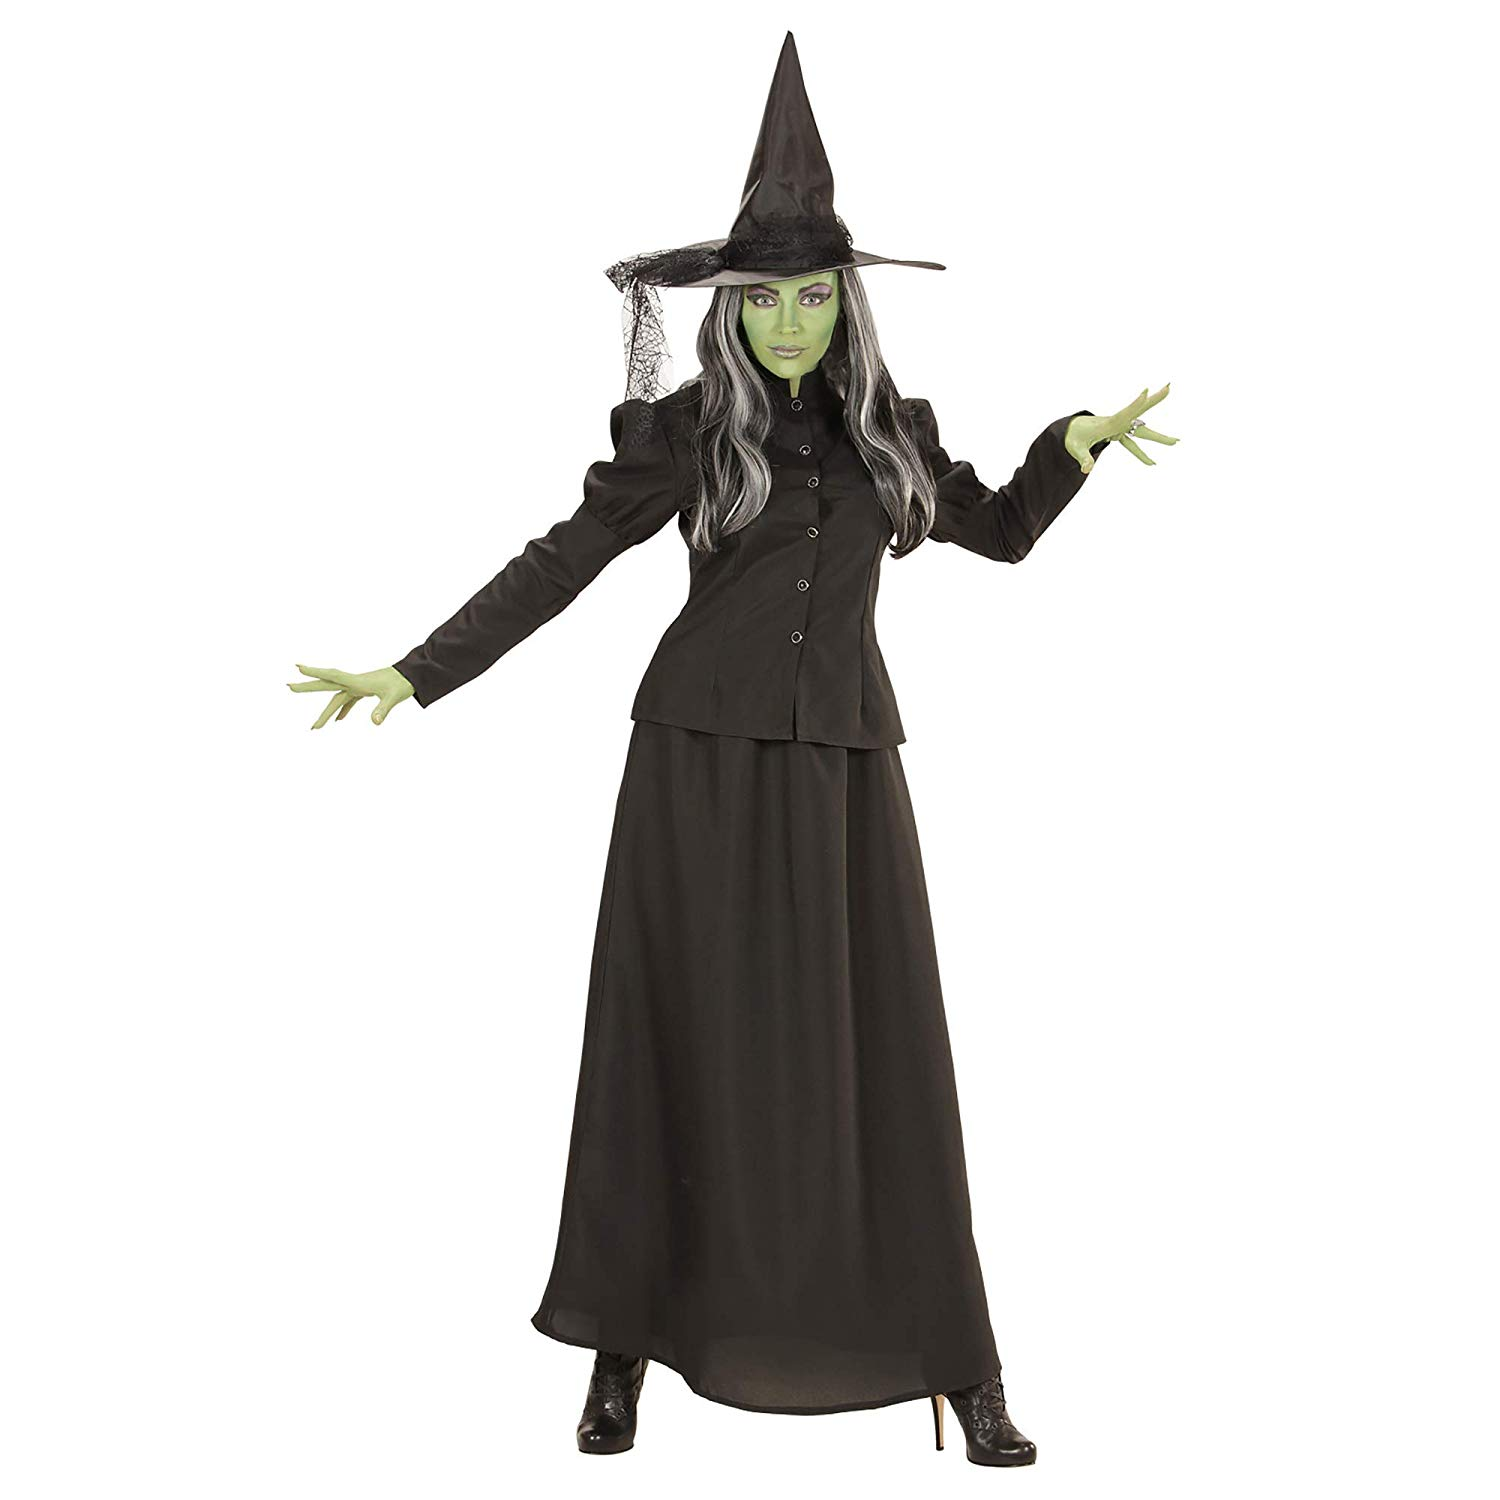 'Widmann Adult Costume Fairytale Witch""